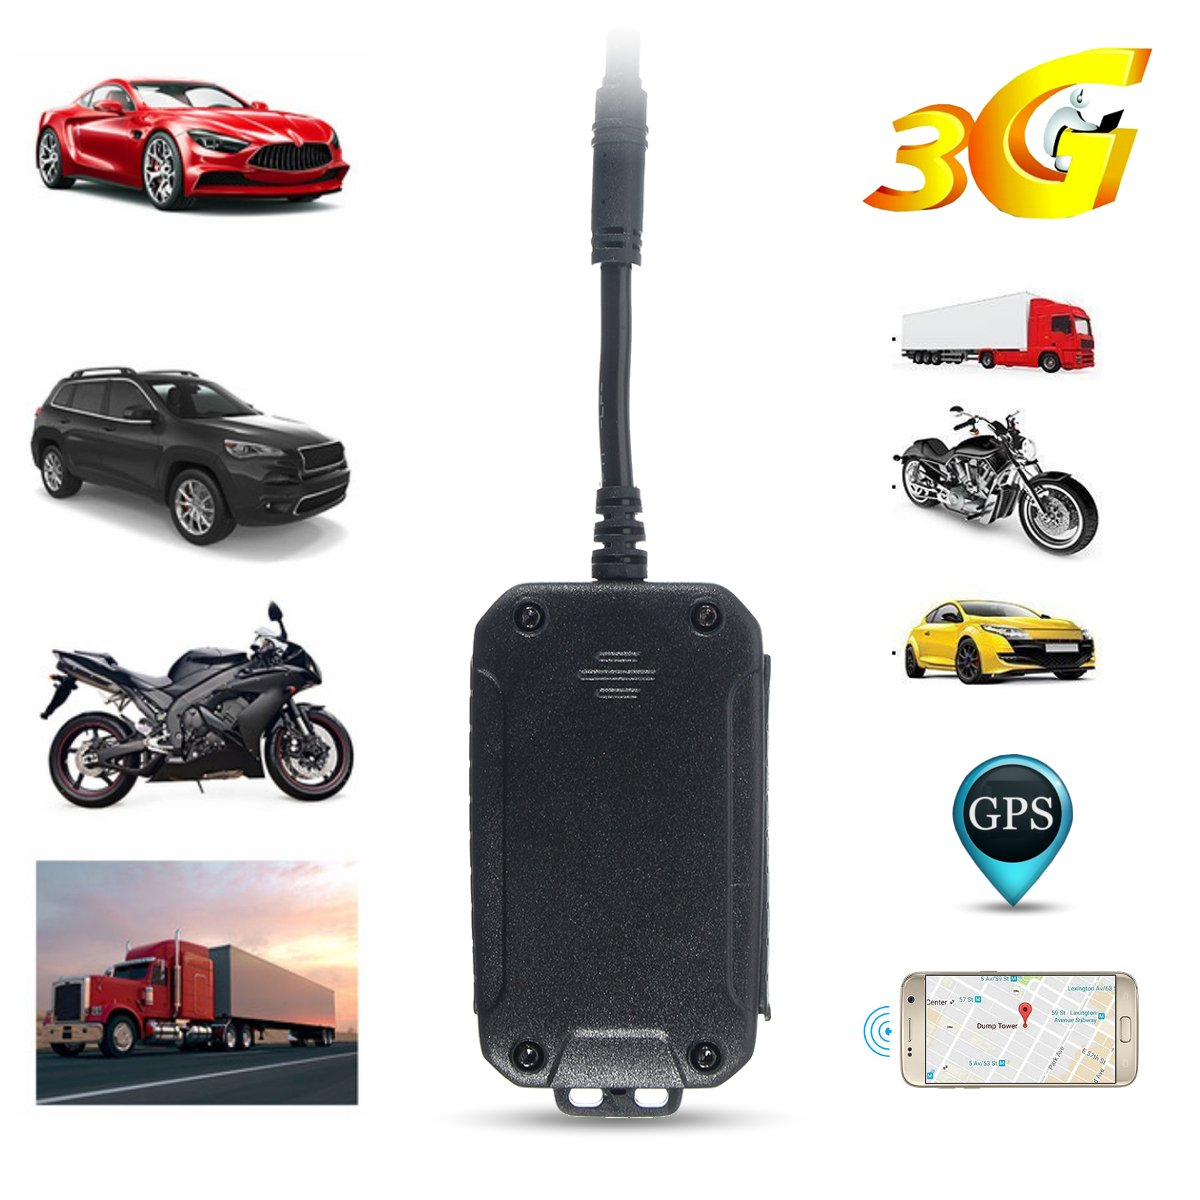 Real Live Time 3G GPS Tracker Car Tracking Device Vehicle Yacht Boat Caravan OZ